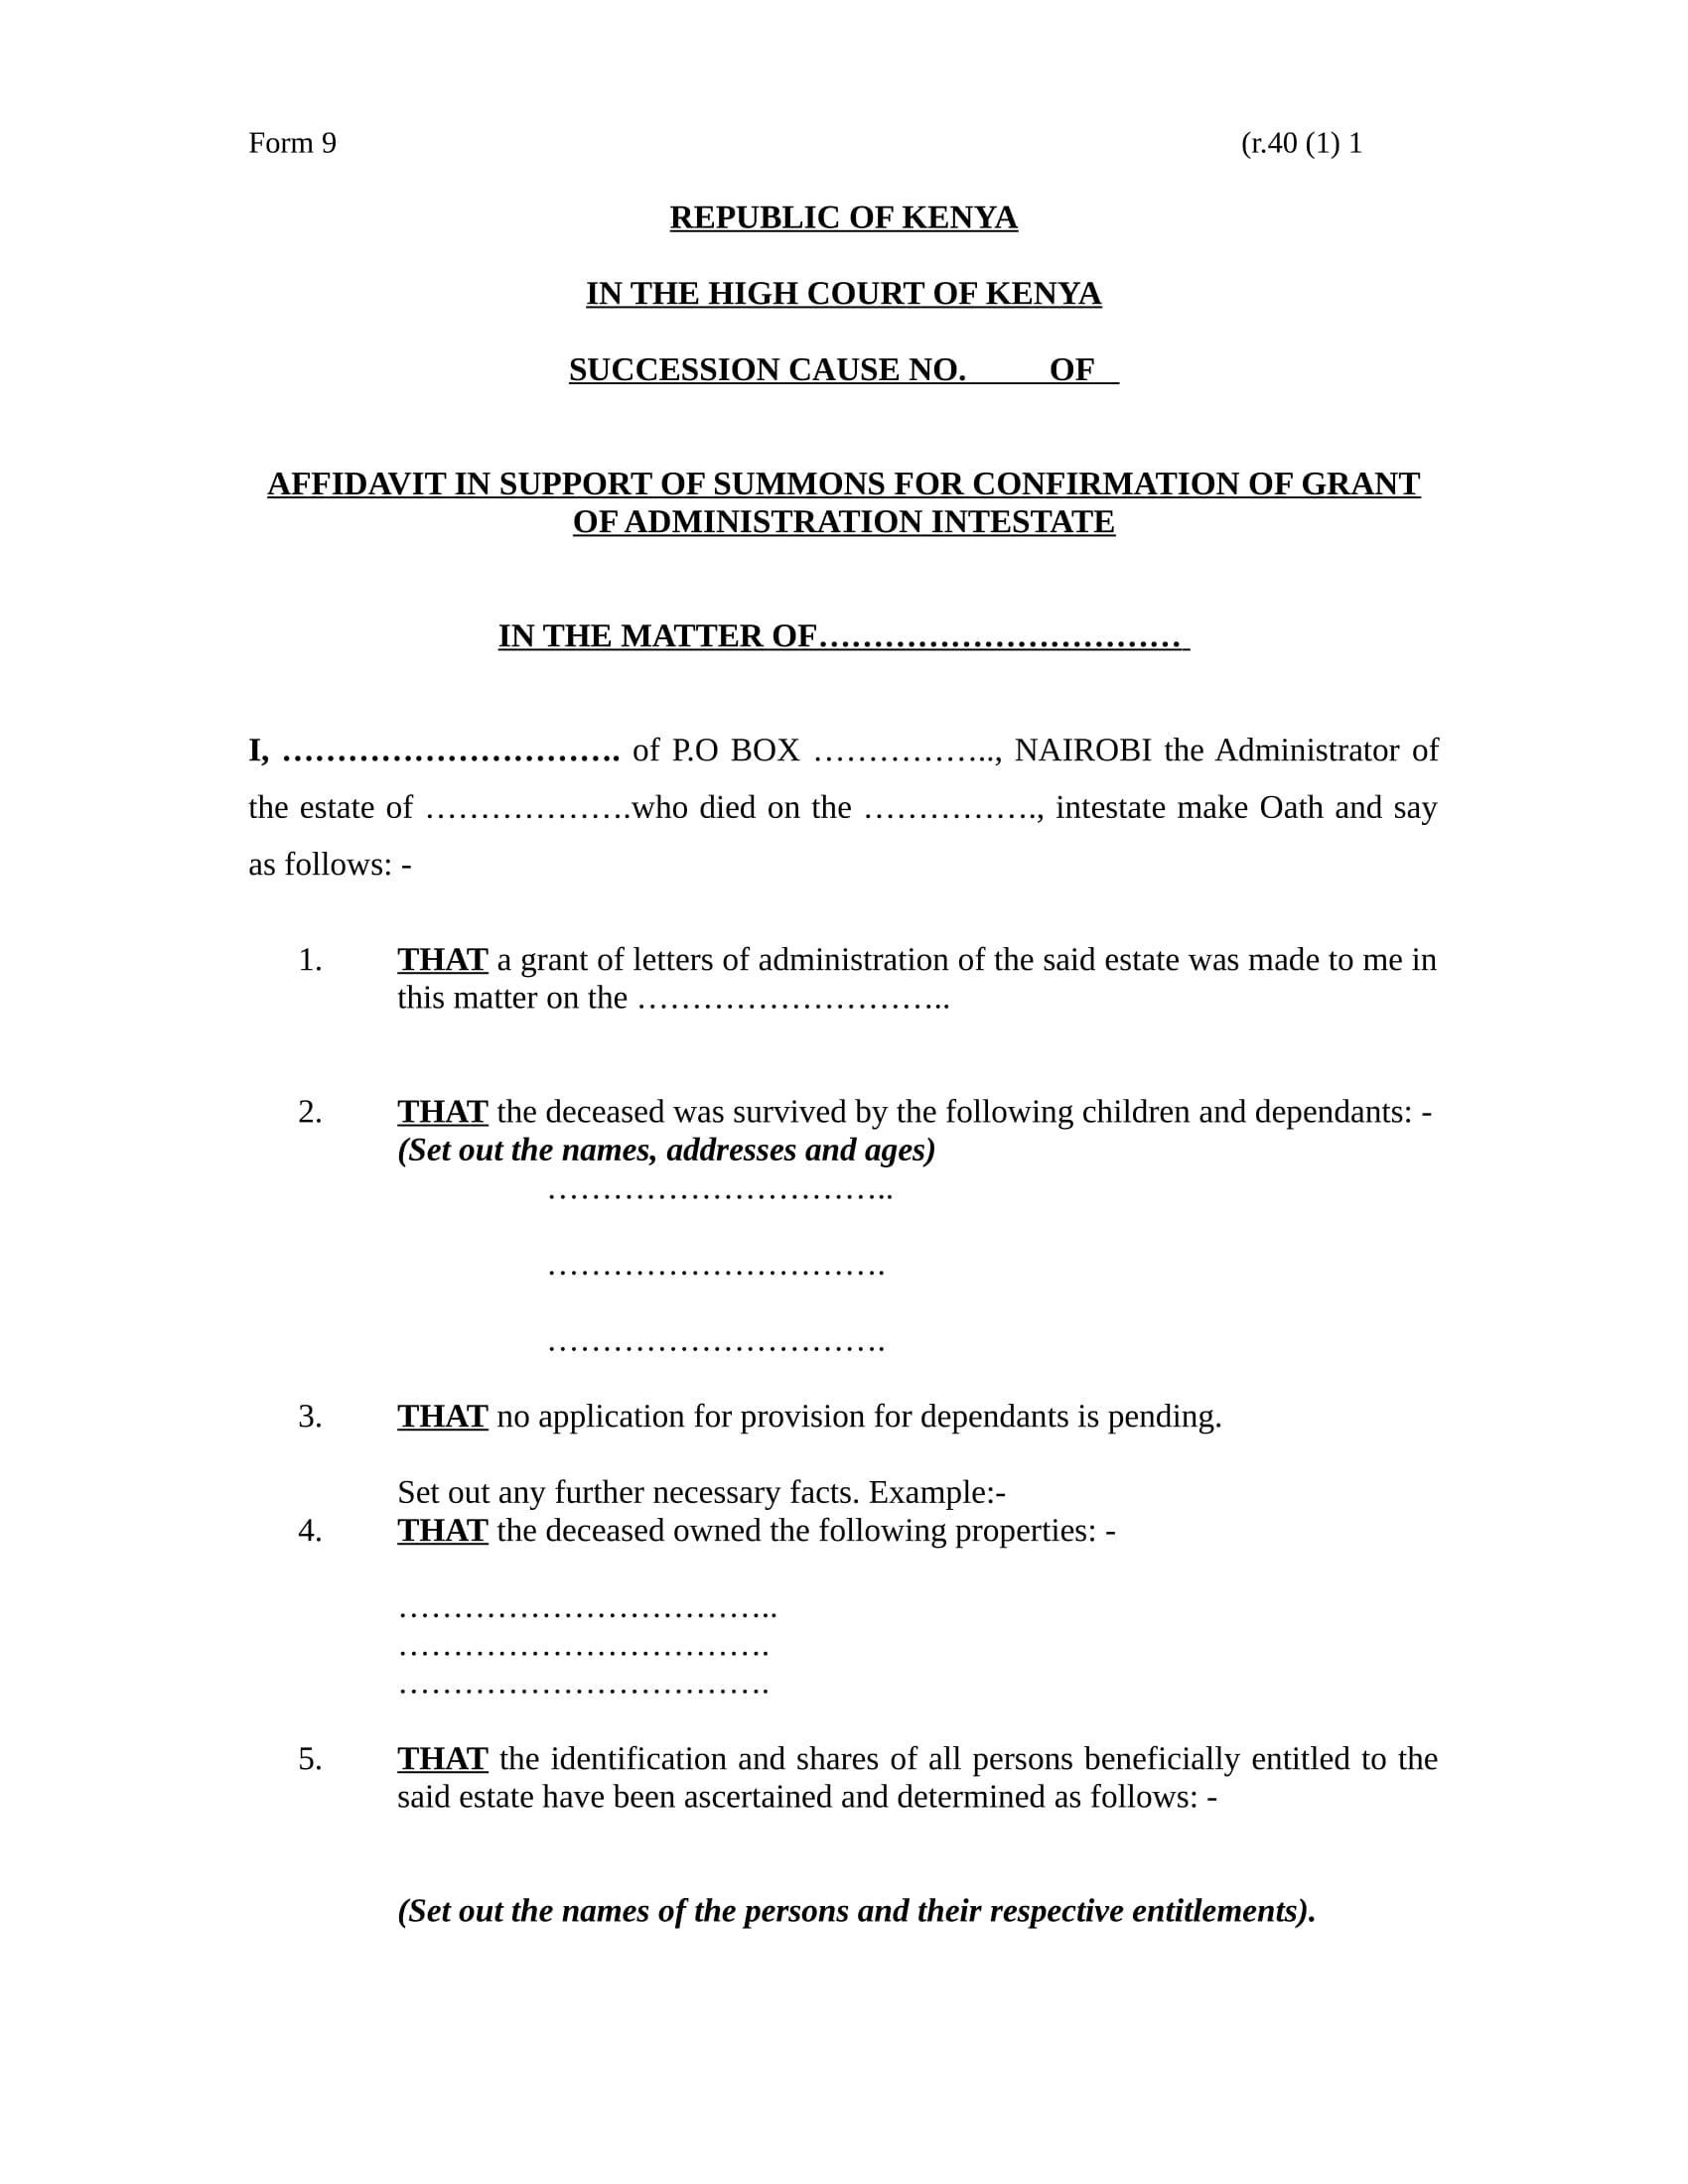 21 affidavit form sample formats summons support affidavit format falaconquin